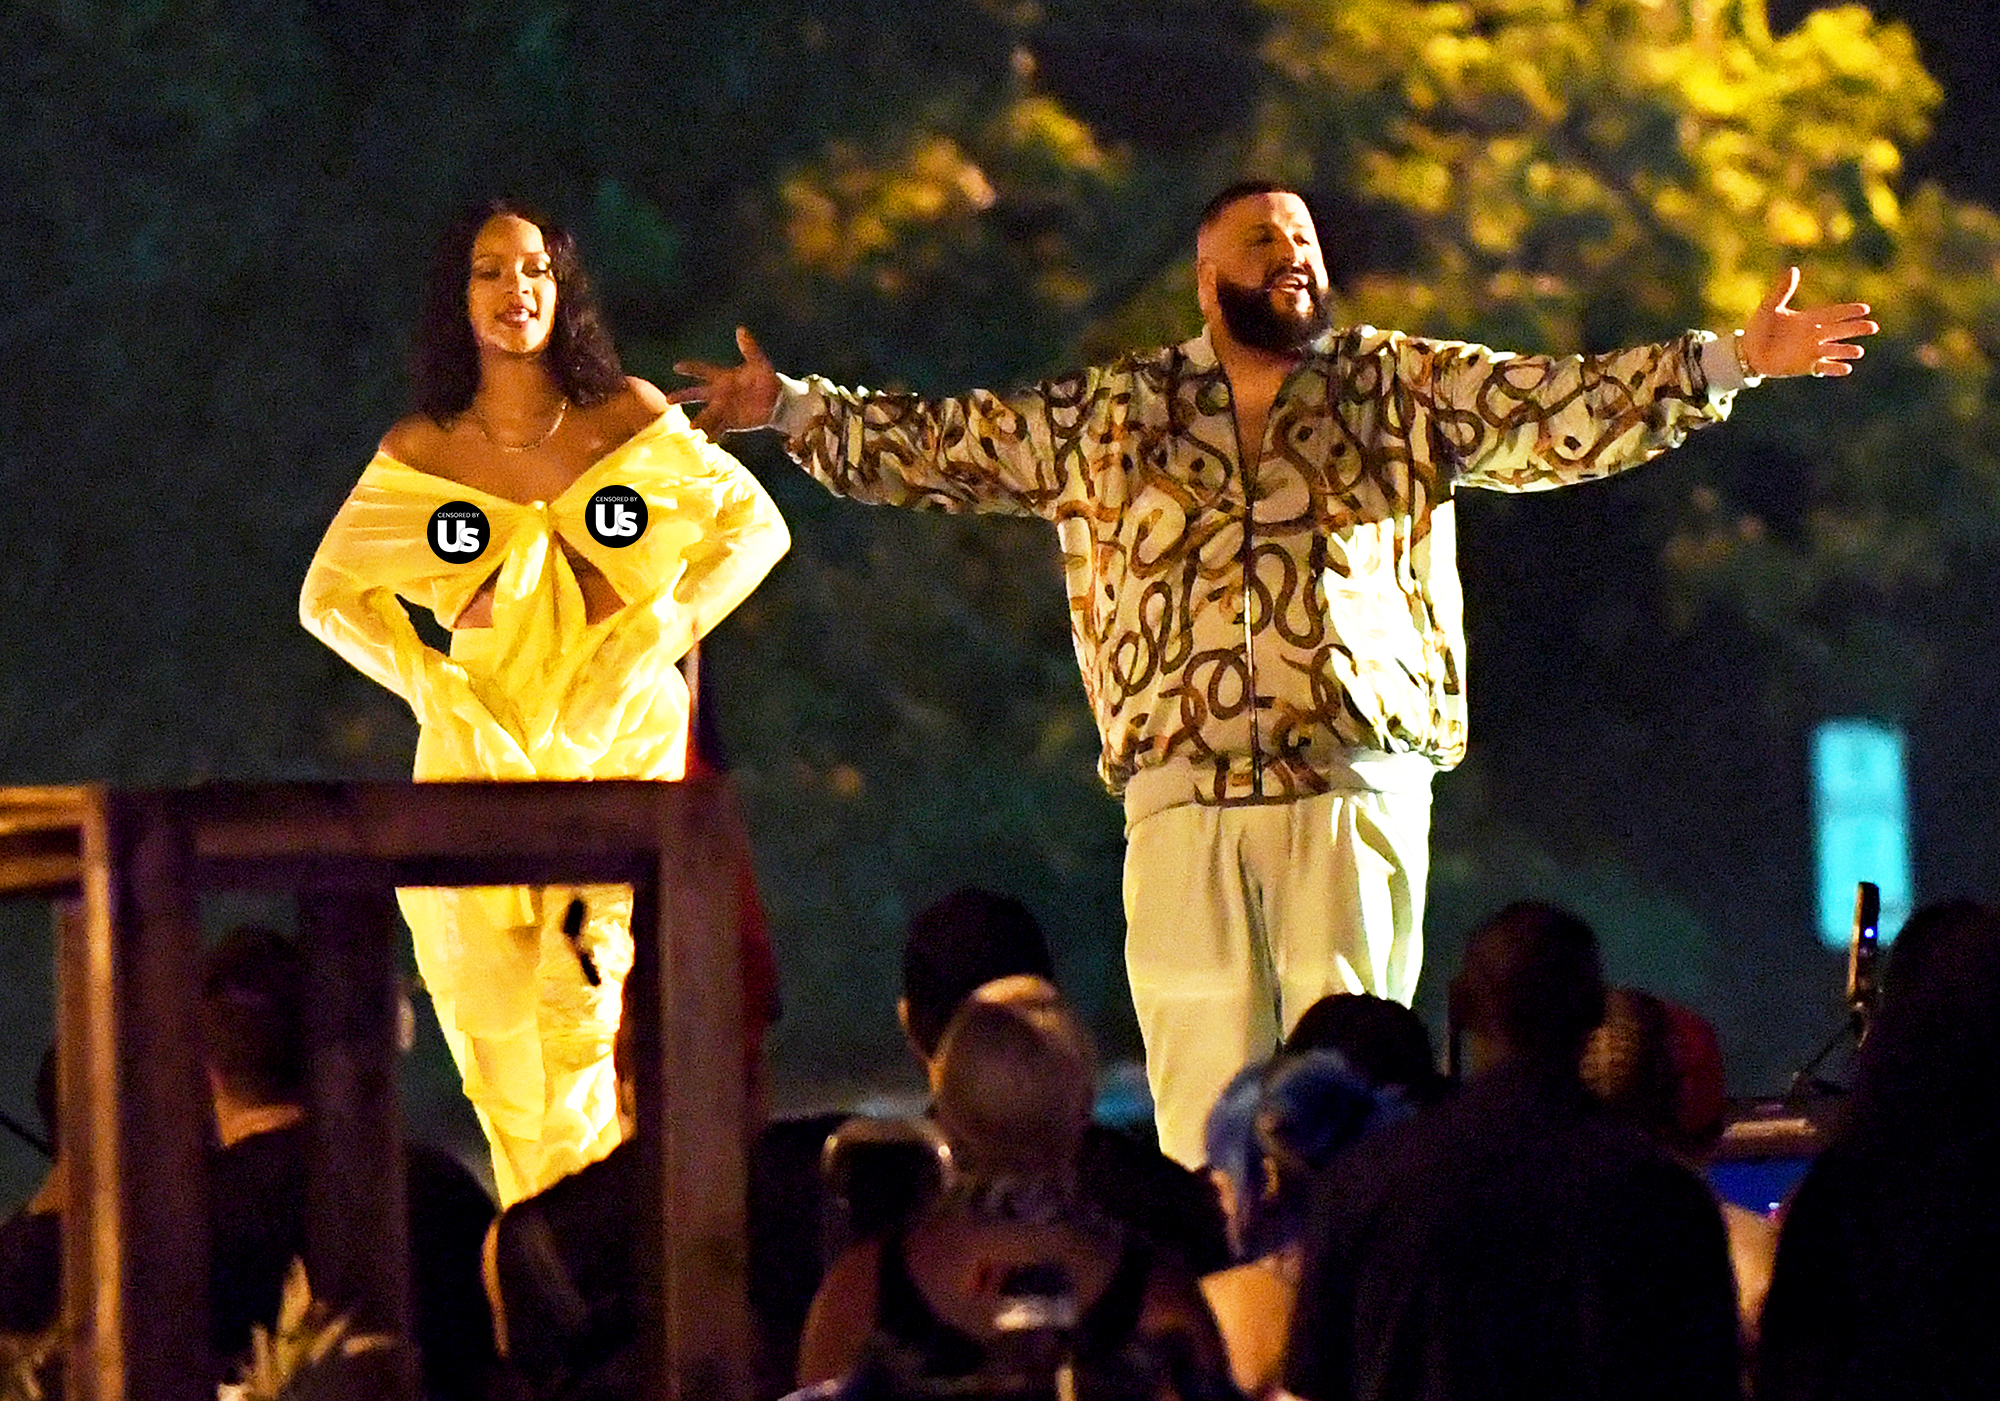 Rihanna and DJ Khaled